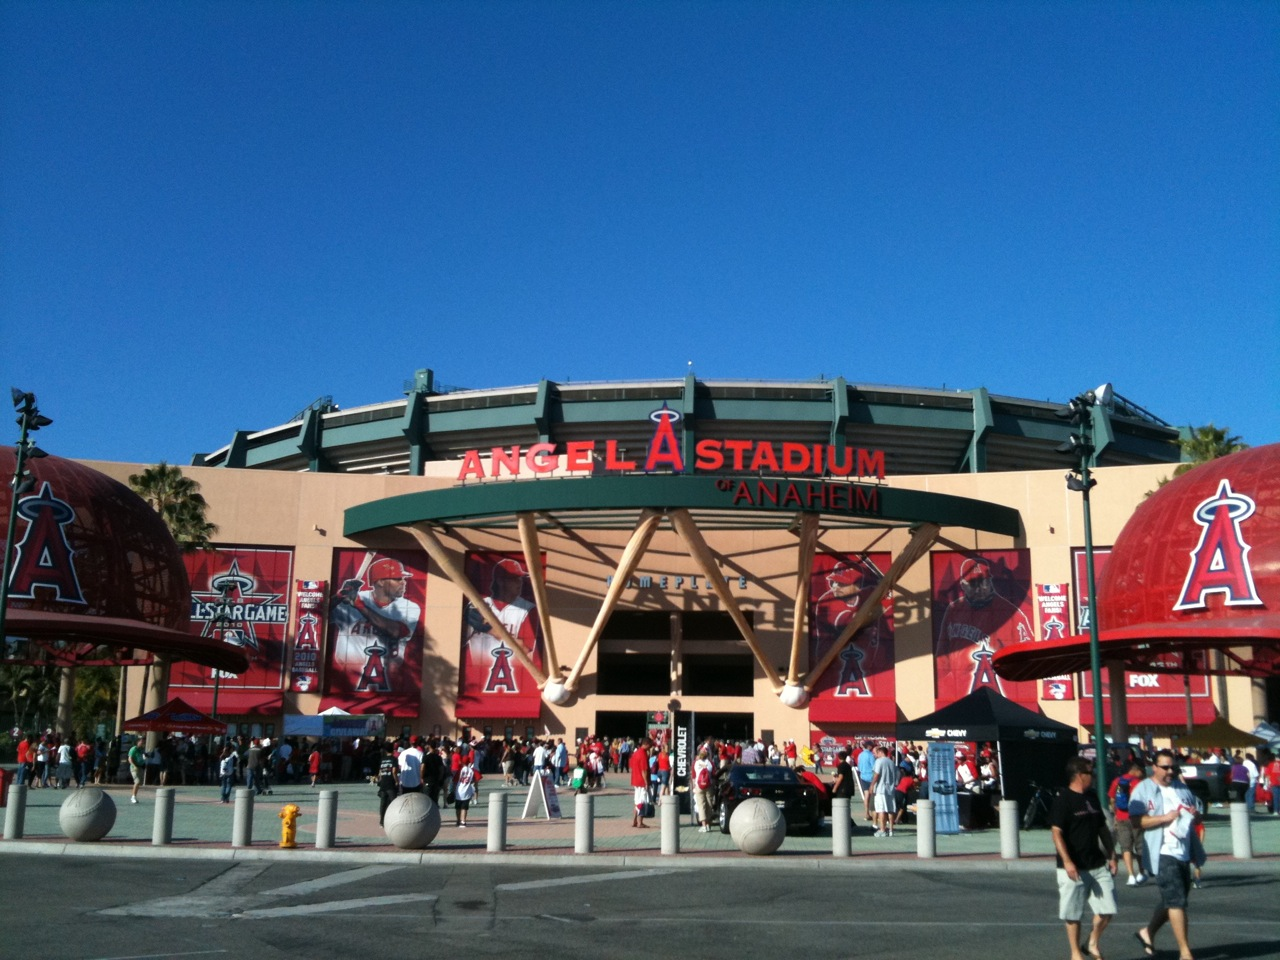 Angel Stadium of Anaheim('10 Anaheim)